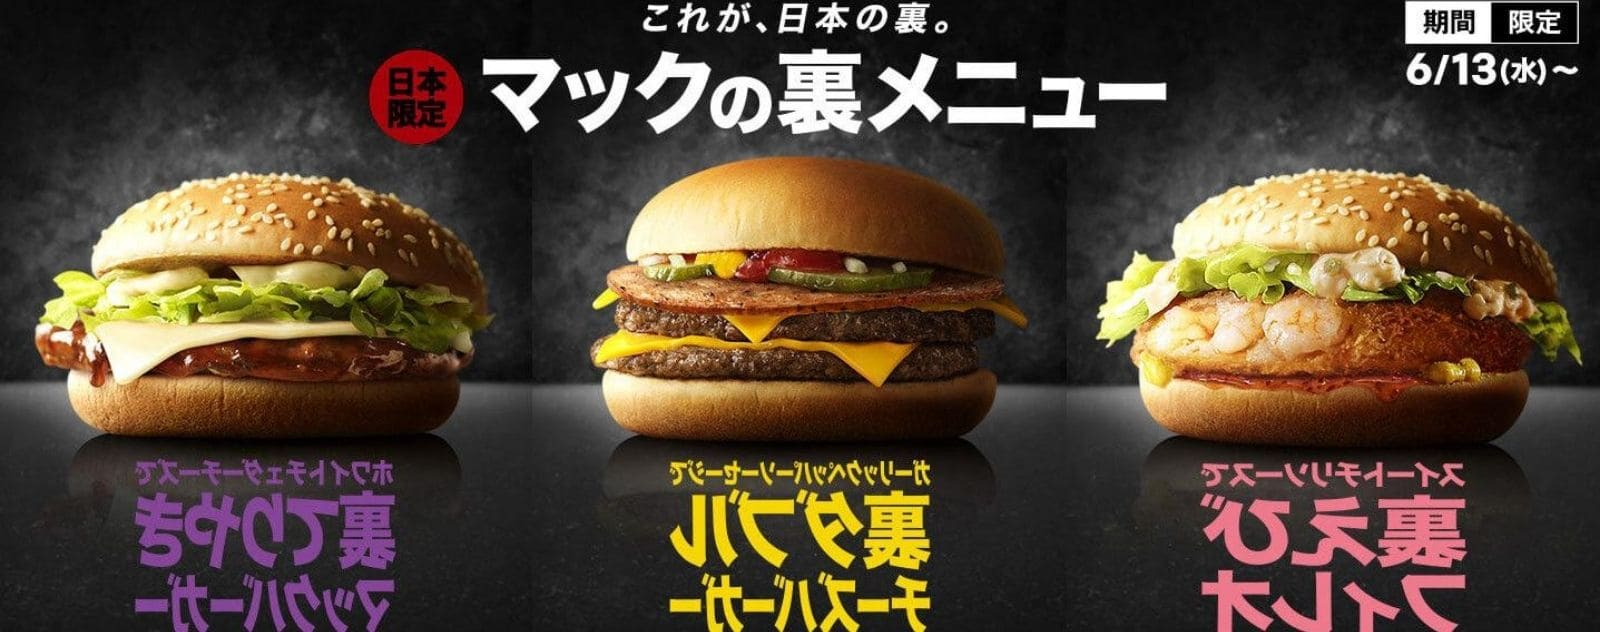 fast food japon burger menu